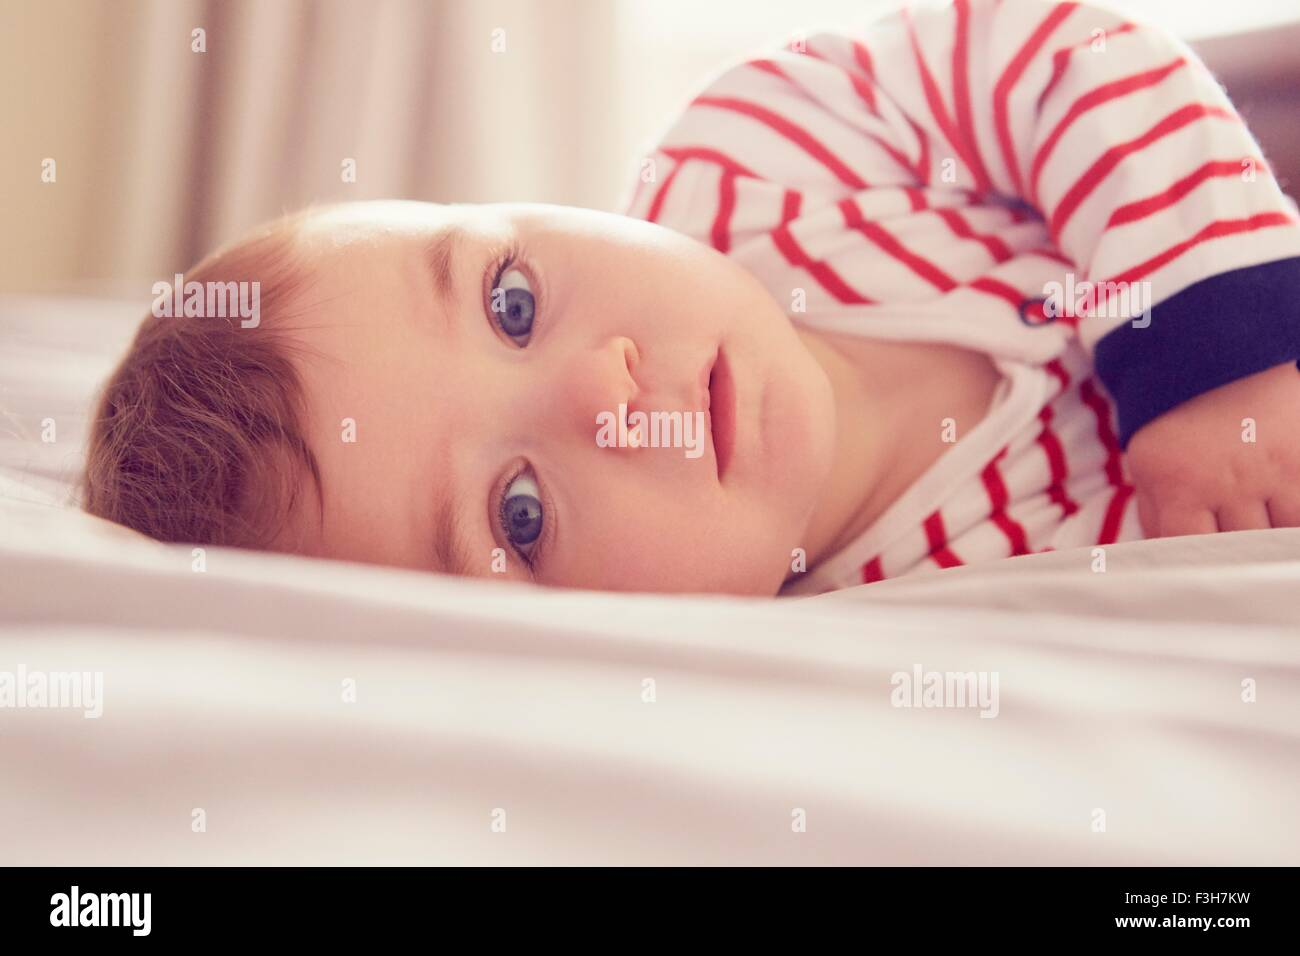 Baby Boy lying on bed Photo Stock